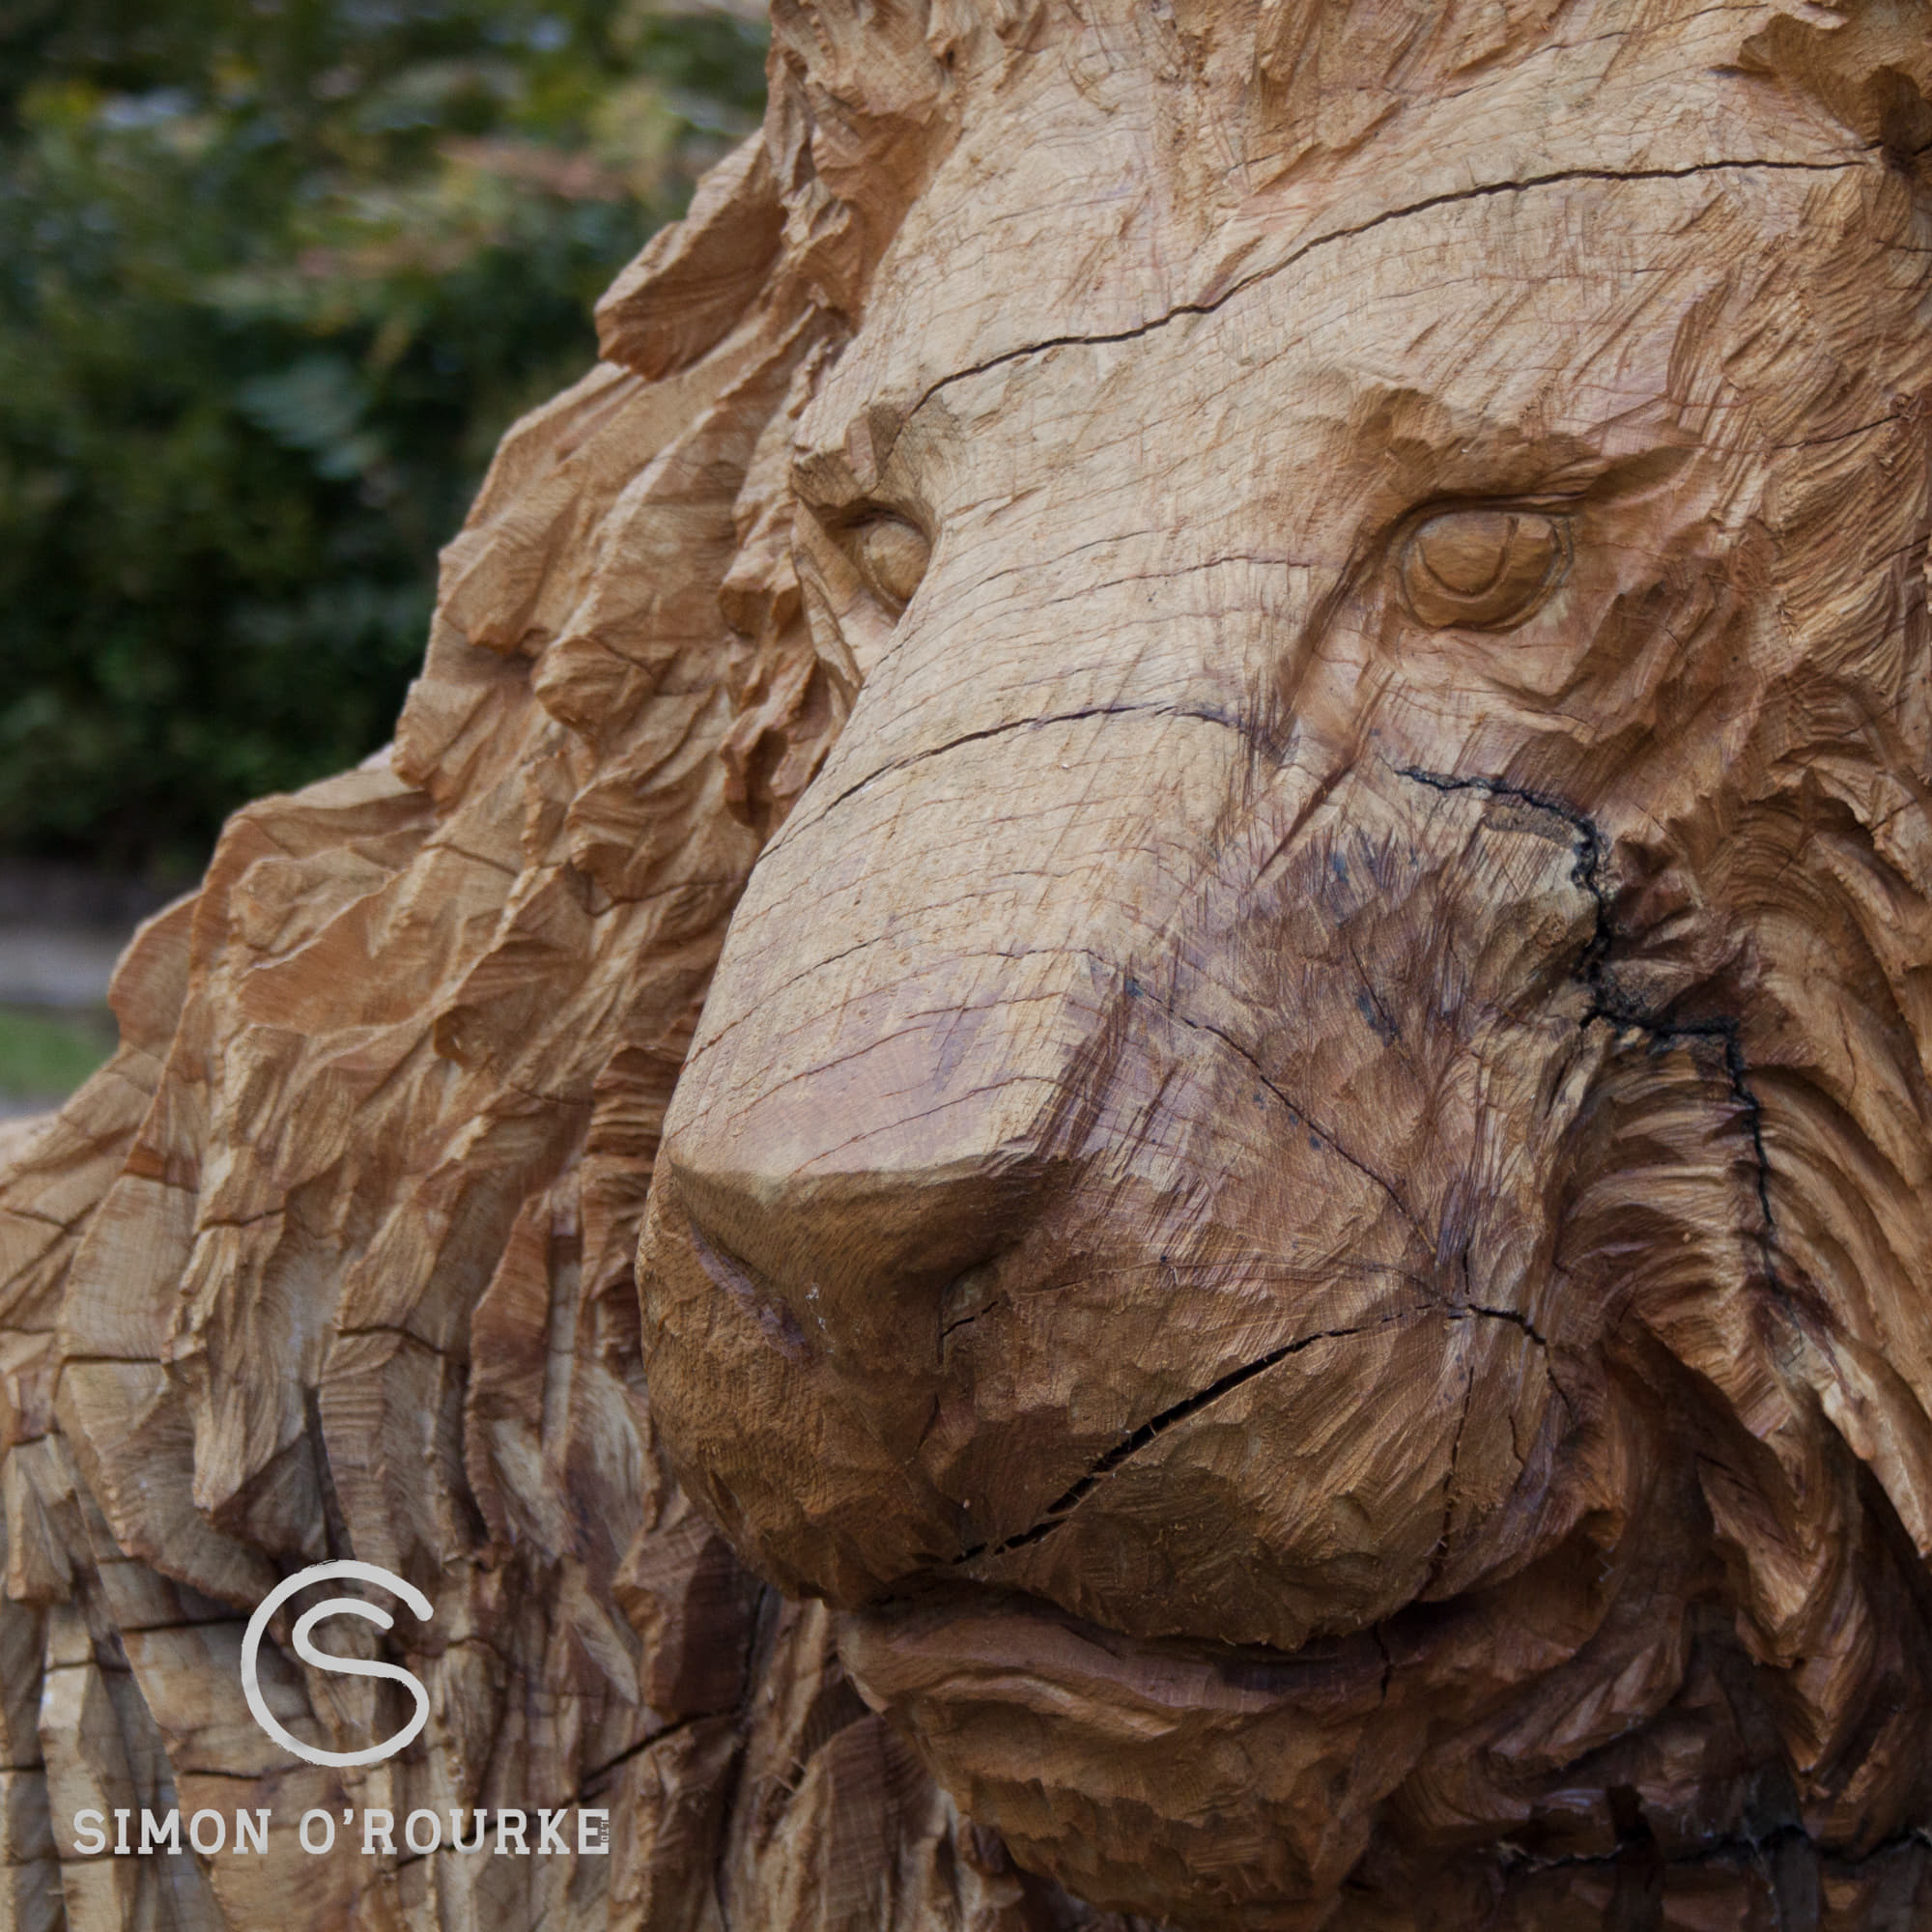 Wood or Bronze sculpture? A close up of 'The Guardian' by Simon O'Rourke. It shows cracks in the nose of the oak lion, and the changing colours of oak sculpture.